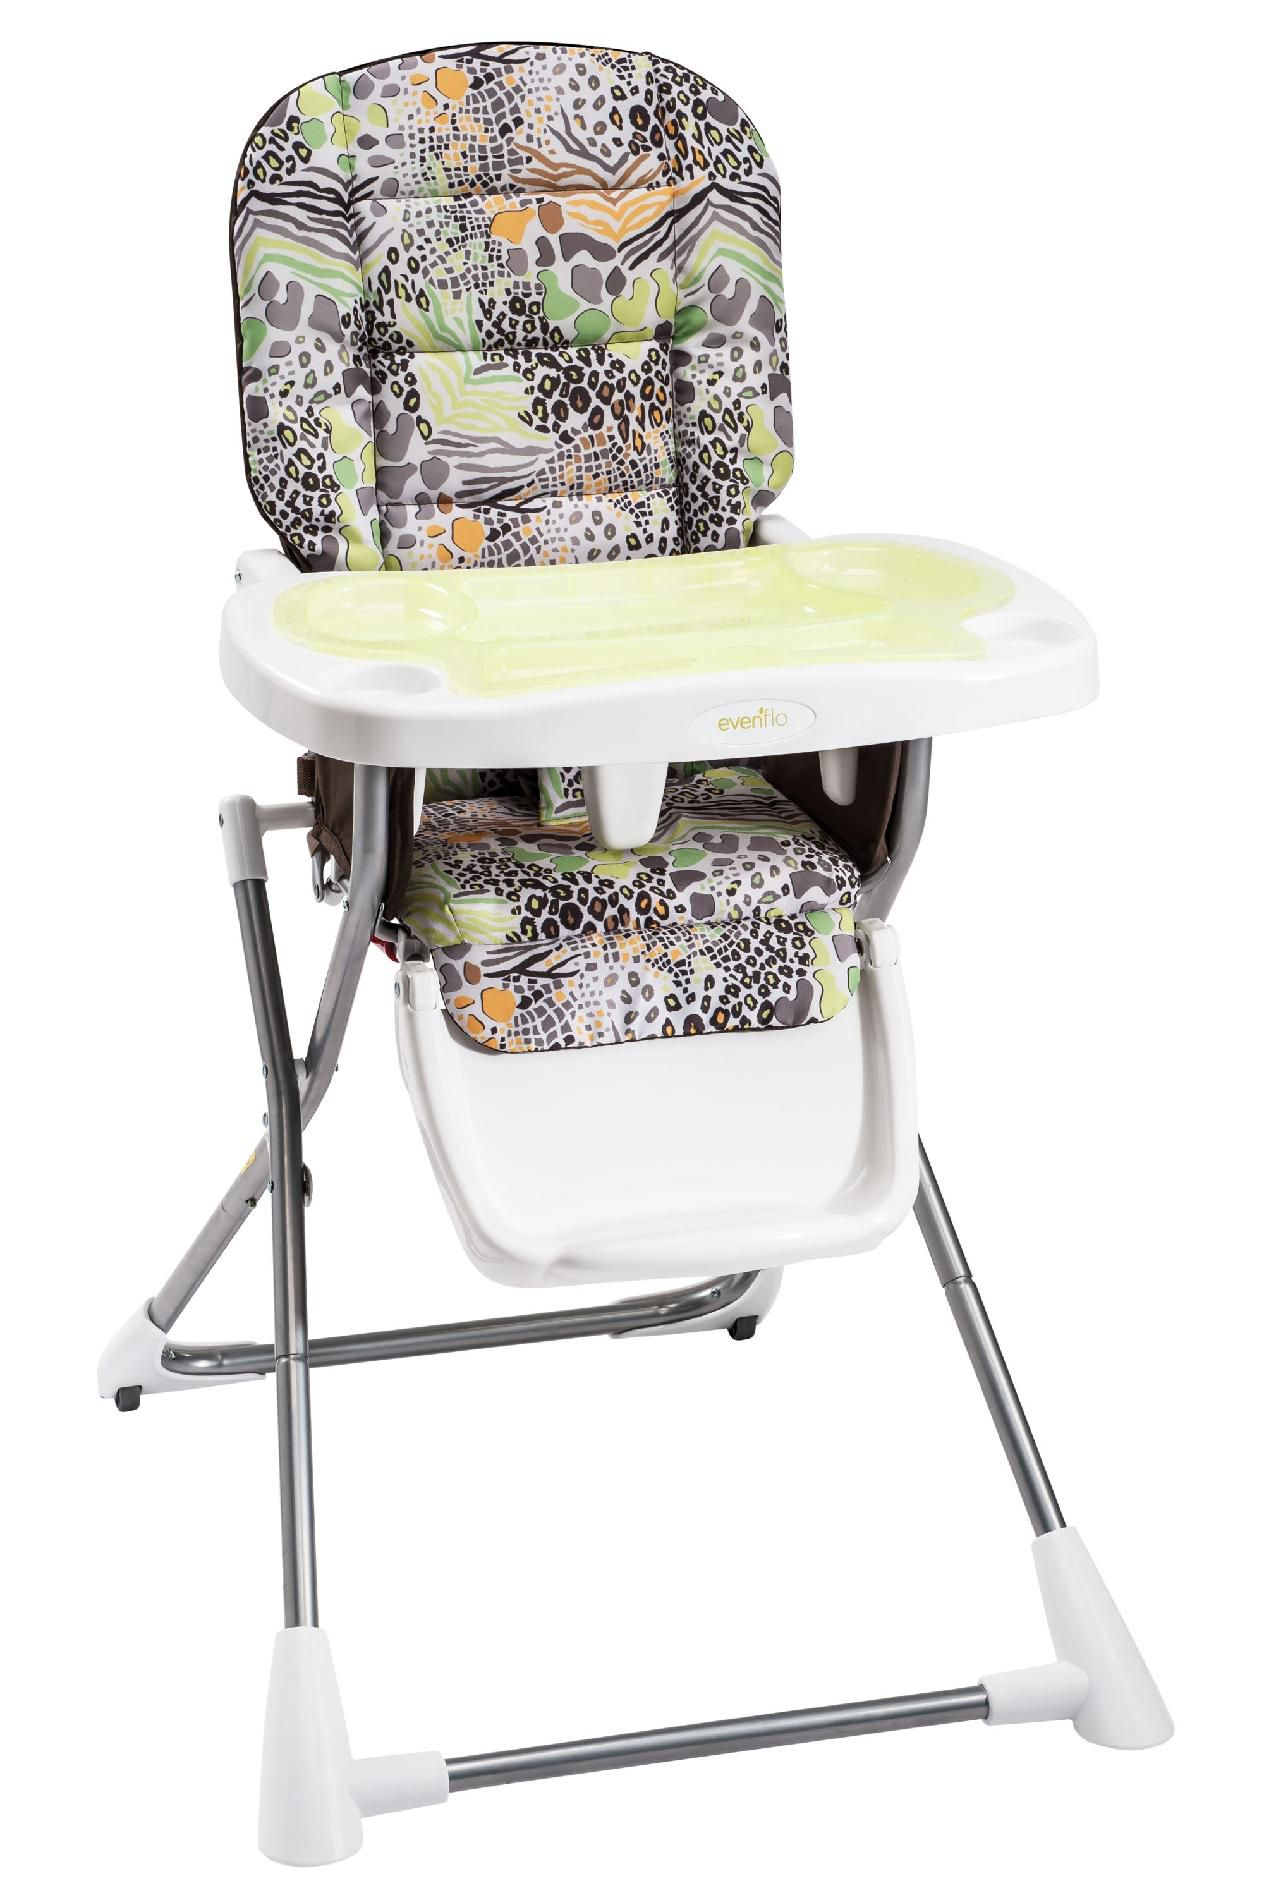 Evenflo Compact Fold High Chair Evenflo High Chair Compact Zoo Friends Shop Your Way